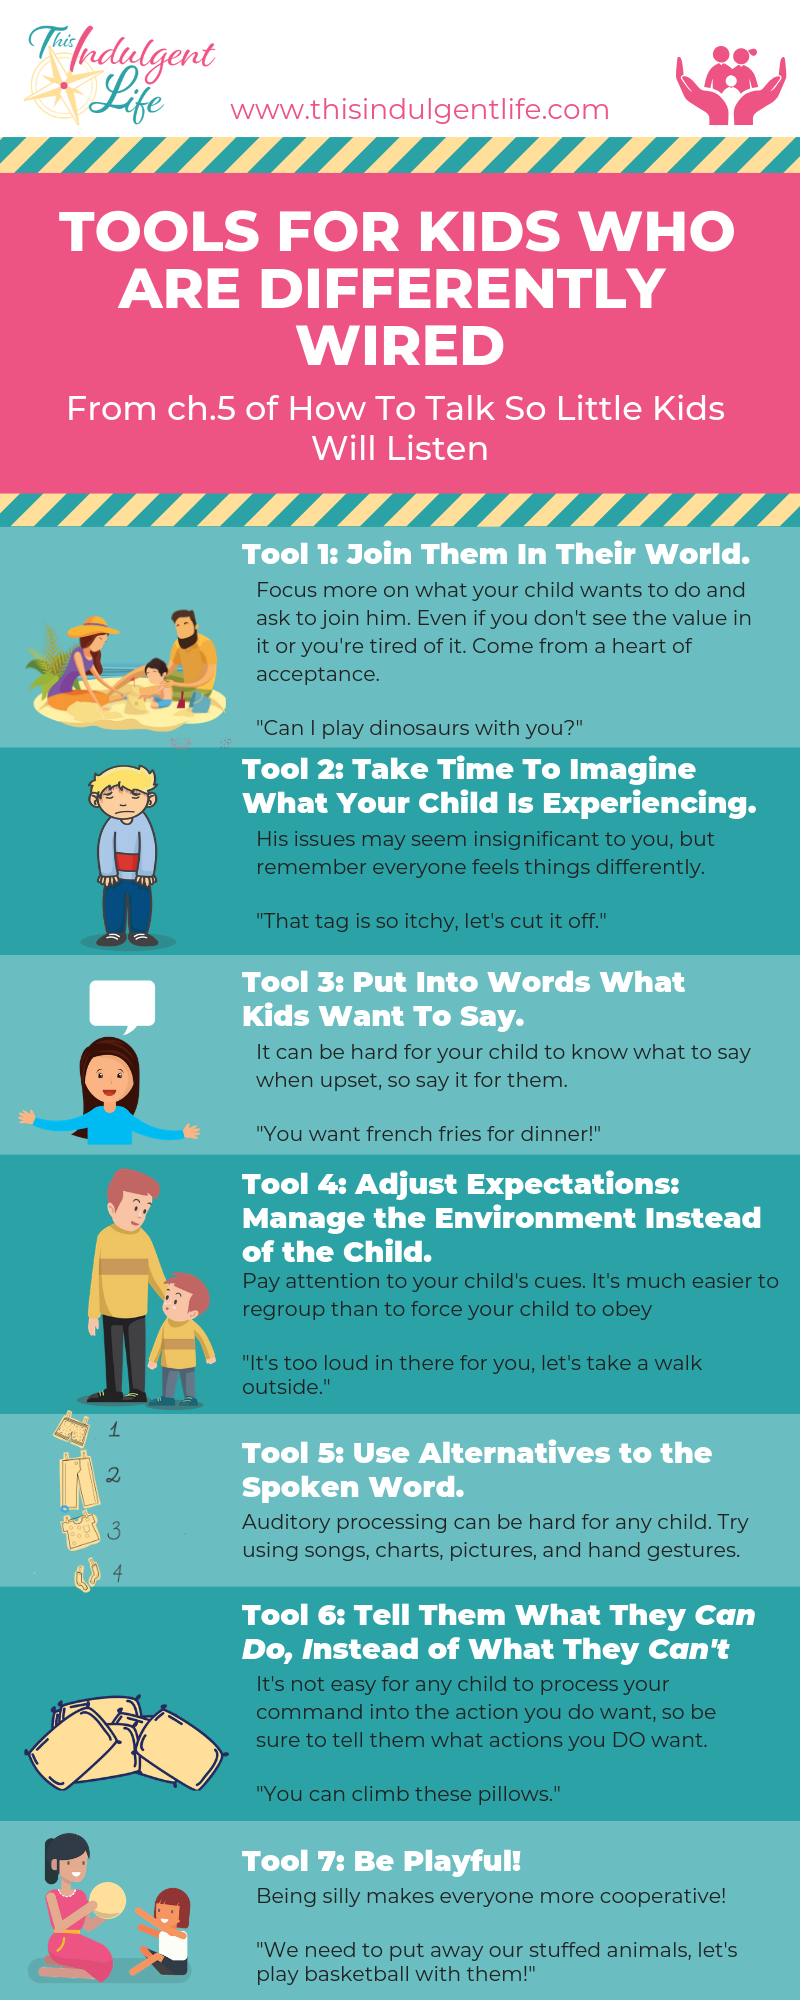 7 Tools for Kids who are differently Wired- Chapter 5 of How To Talk So Little Kids Will Listen, a chapter for parents with kids on the spectrum or other neurodivergences. | This Indulgent Life | Want to know if gentle parenting will work with your child? Afraid you can't use the reasoning techniques from the rest of the book? Then this chapter is for you. Gentle parenting CAN work with your neuroatypical child, but you may need to make some adjustments. | #gentleparenting #neurodivergentchildren #neurodivergence #neurotypical #autismspectrumdisorder #sensoryprocessingdisorder #strongwilledkids #discipline #respectfulparenting #peacefulparenting #mindfulparenting #toolsforconnection #parentbonding #auspergers